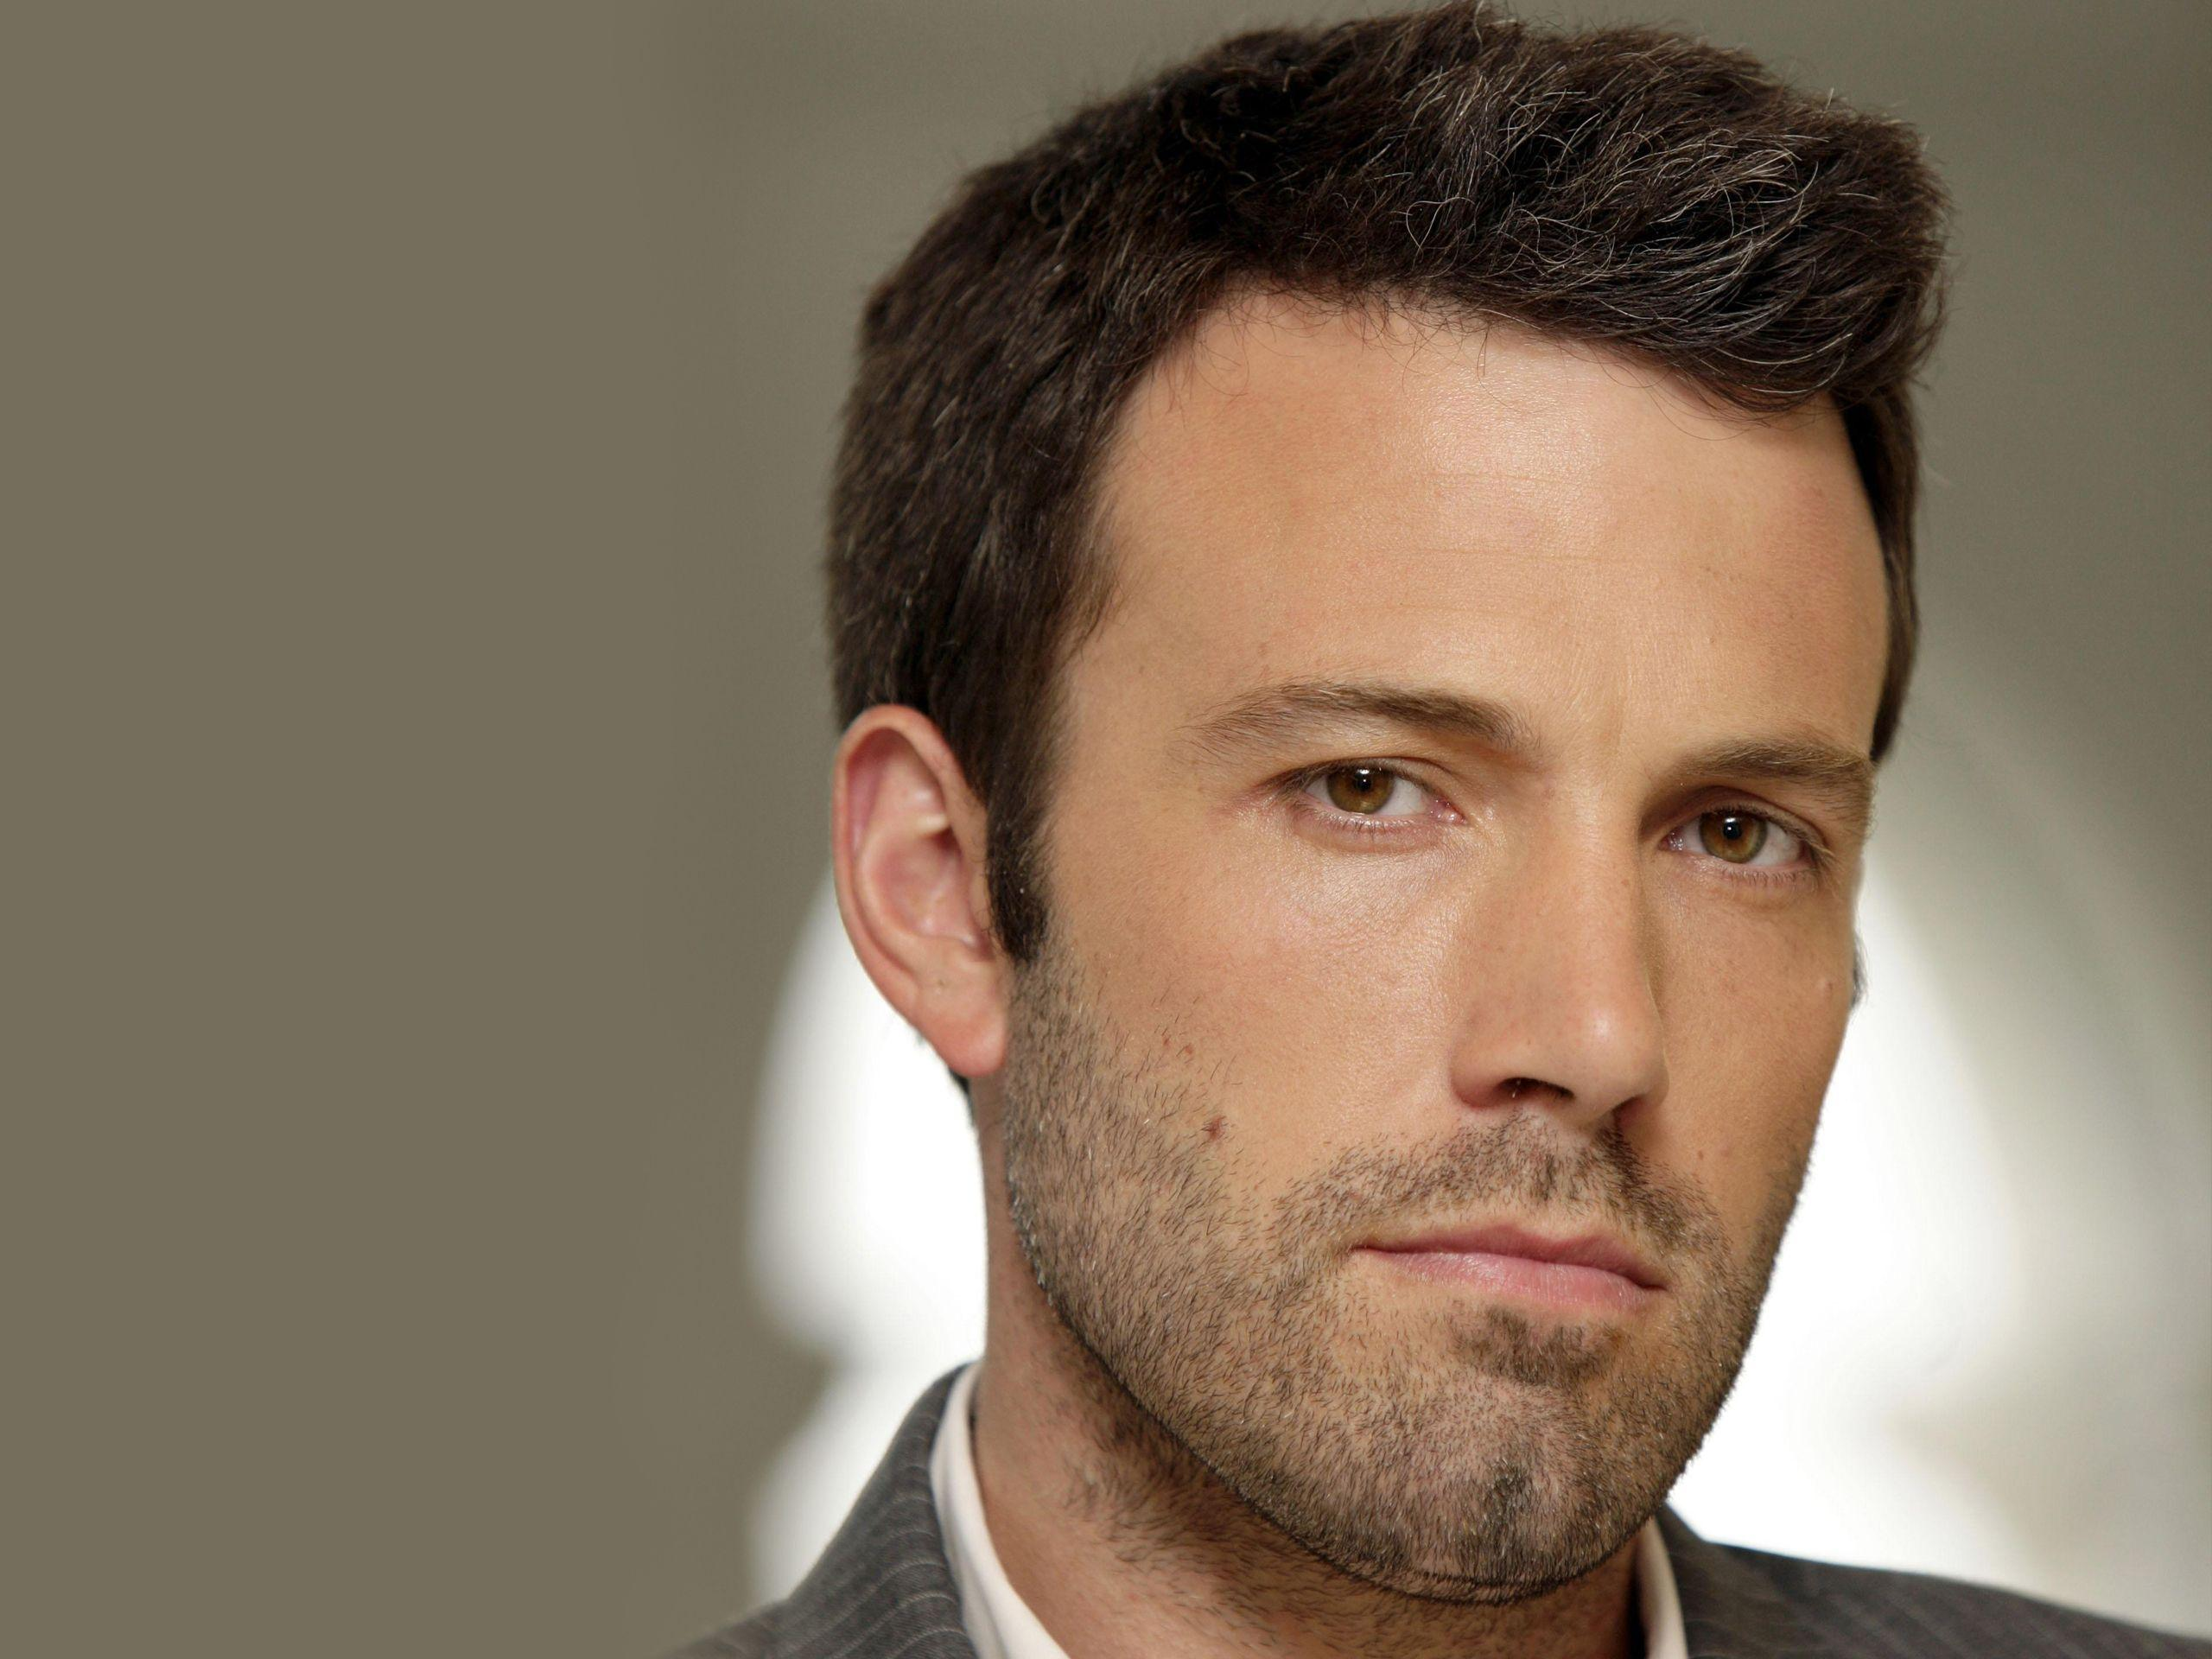 Awesome Ben Affleck Pic | Ben Affleck Wallpapers